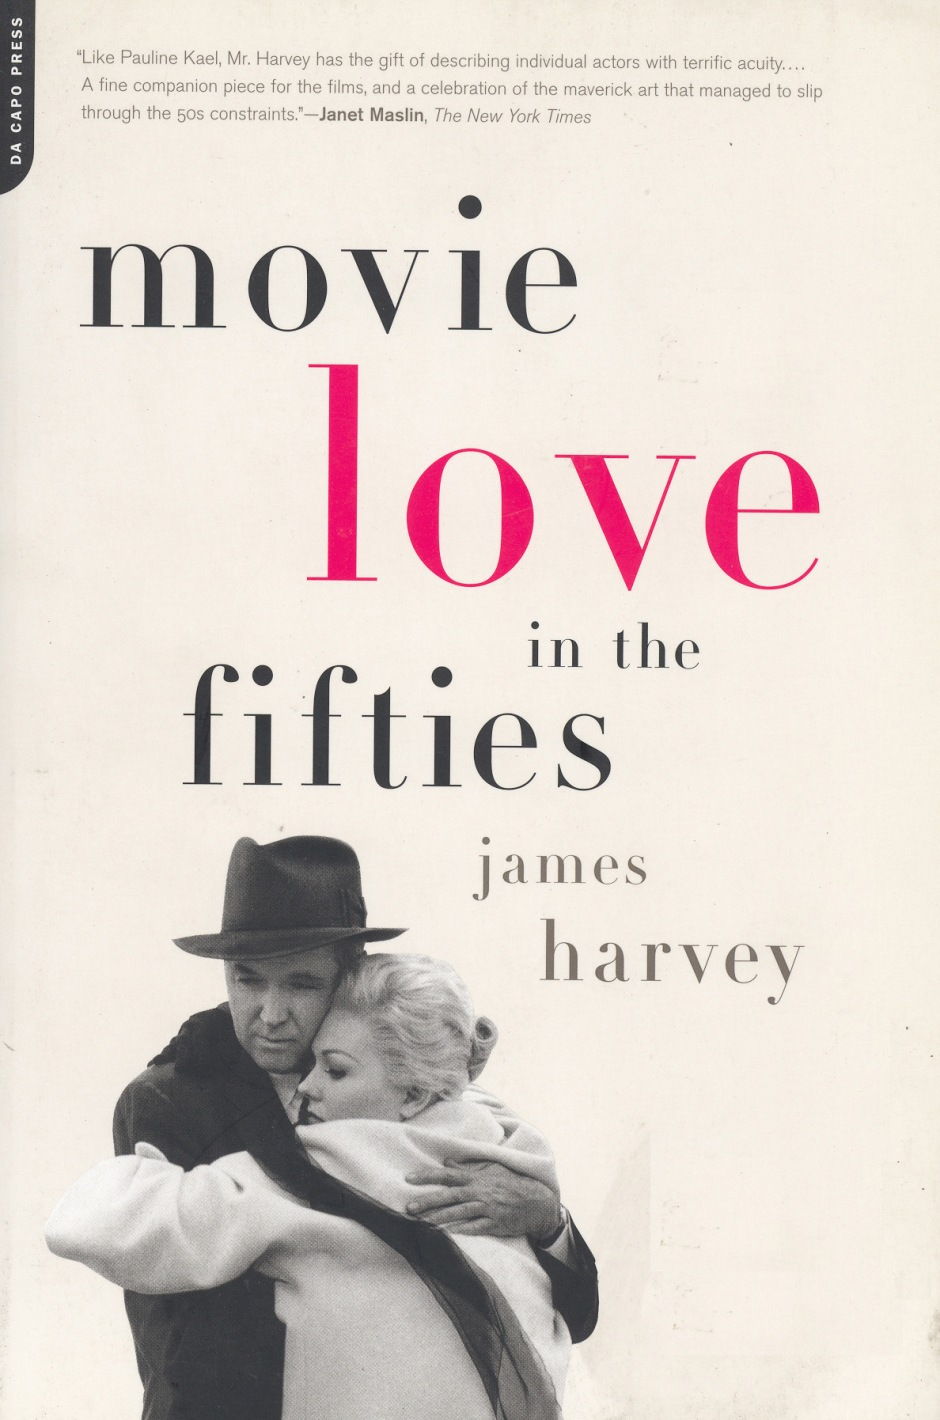 harvey-james-movie-love-in-the-fifties